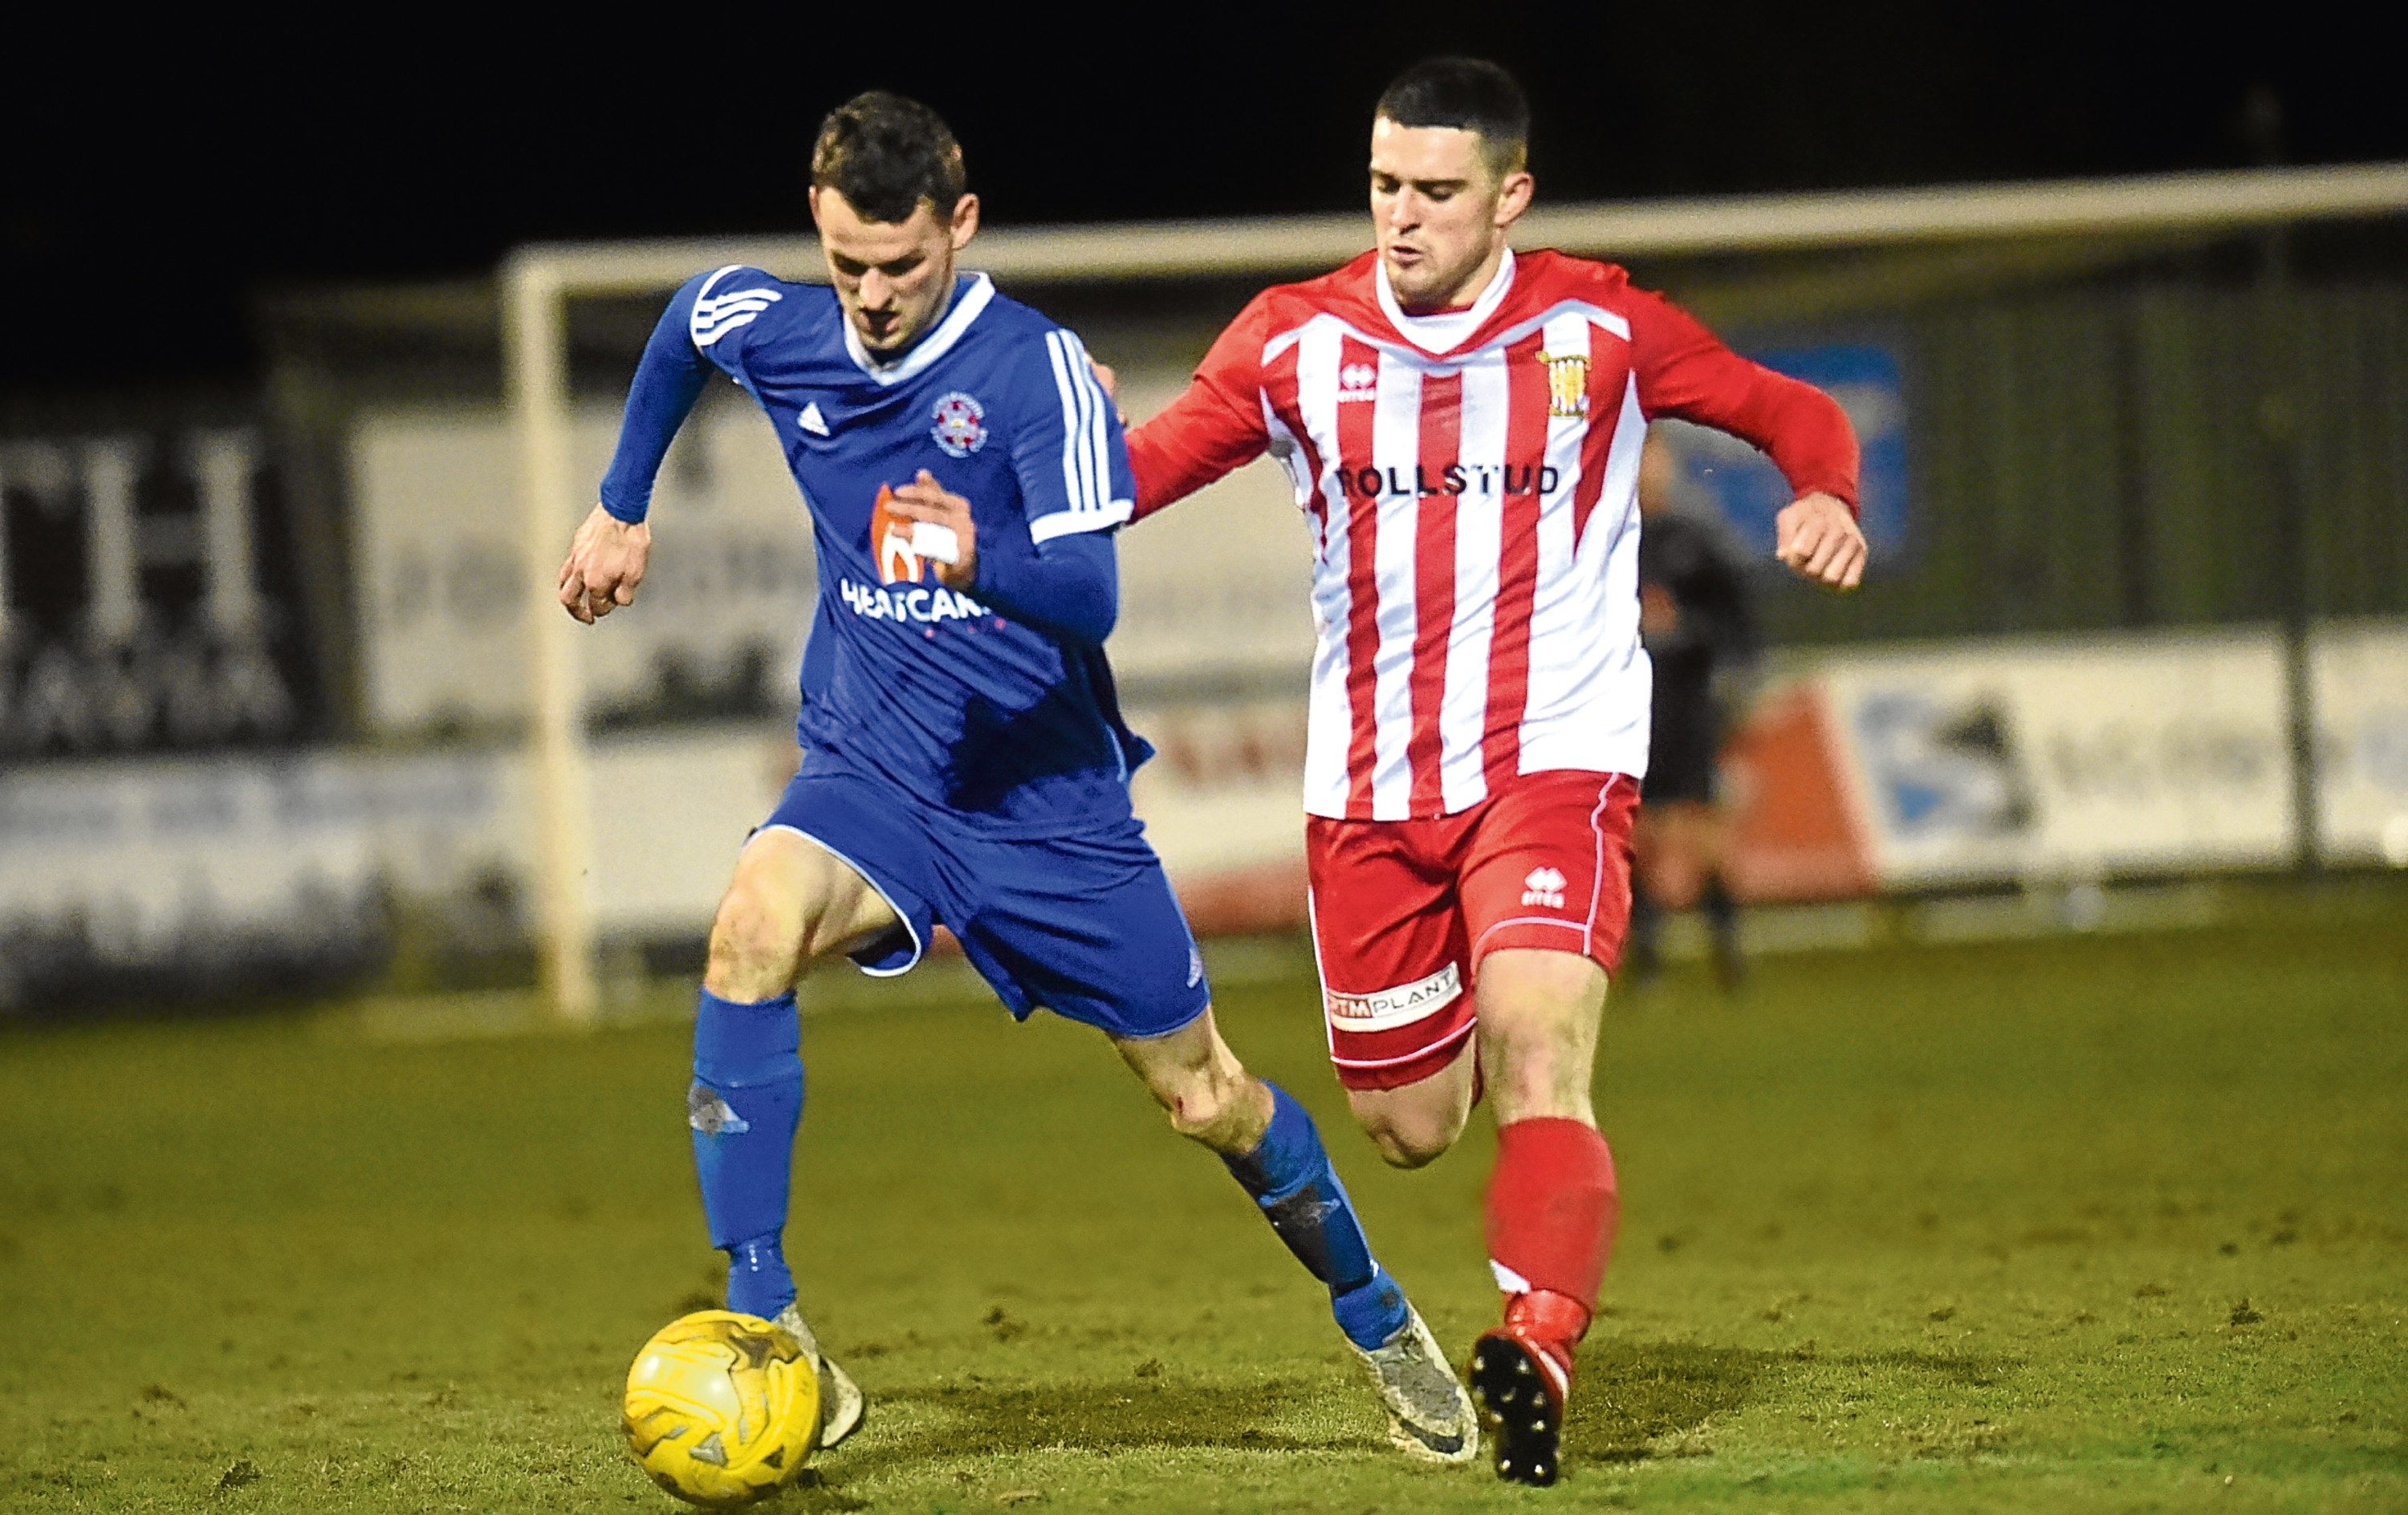 Formartine V Lossie (blue) at North Lodge Park, Pitmedden.  Pictured are Lossie's Ryan Farquhar and Formartine's Scott Barbour.  15/03/17  Picture by HEATHER FOWLIE